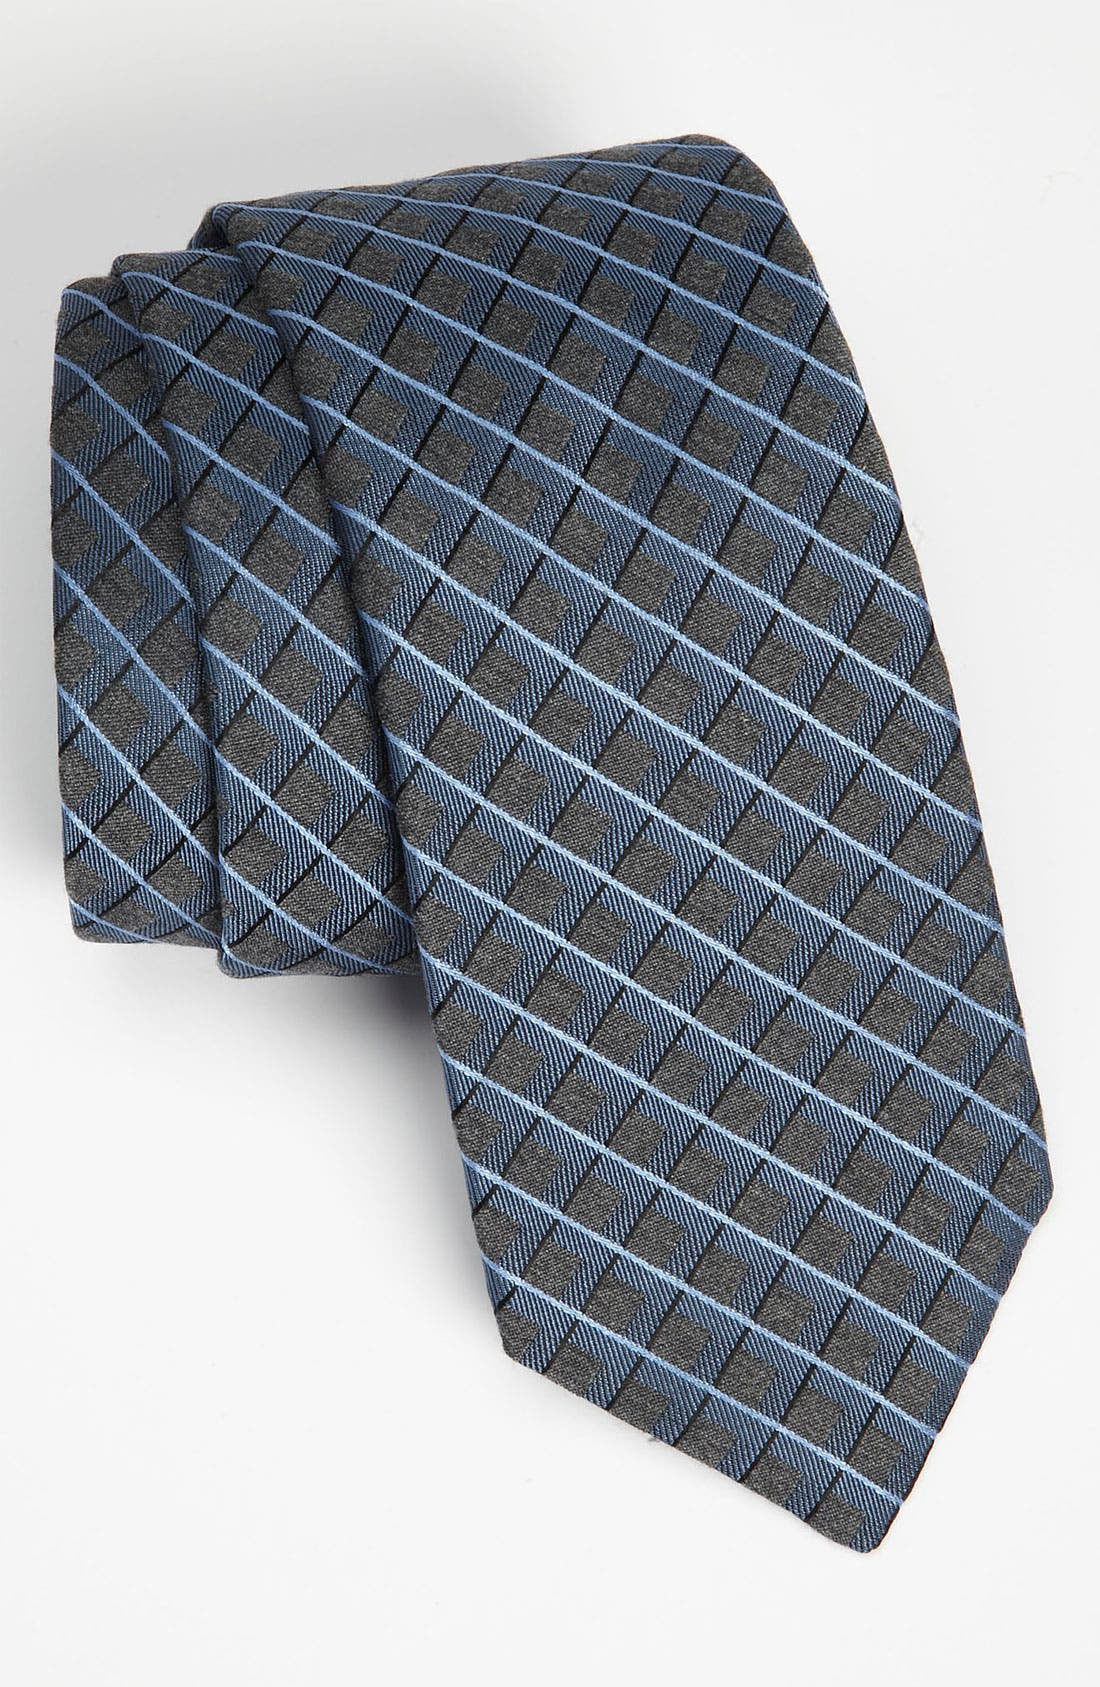 Alternate Image 1 Selected - Michael Kors Woven Silk Blend Tie